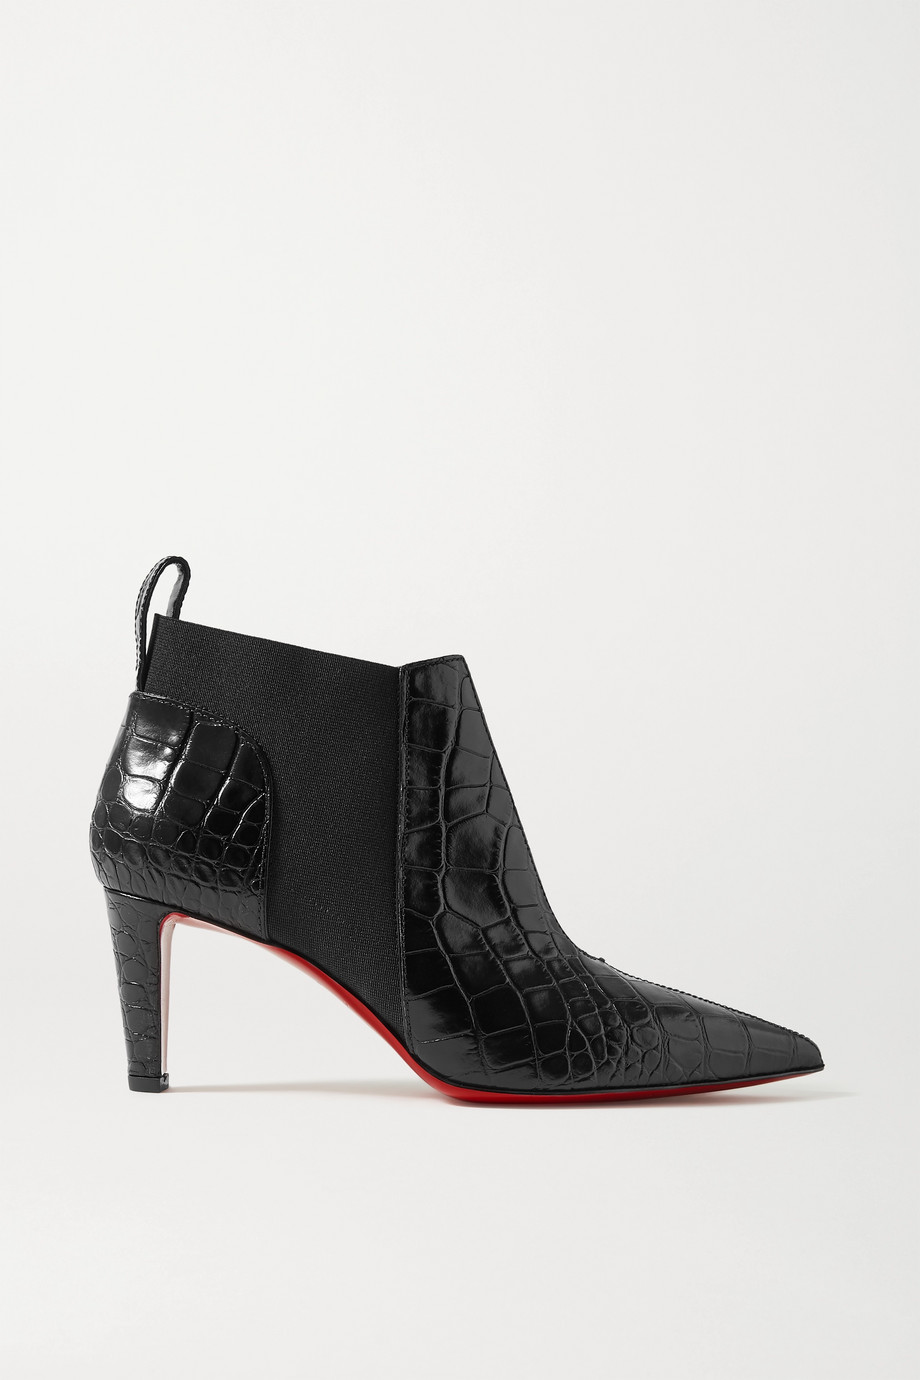 Christian Louboutin Tchakaboot 70 croc-effect leather ankle boots